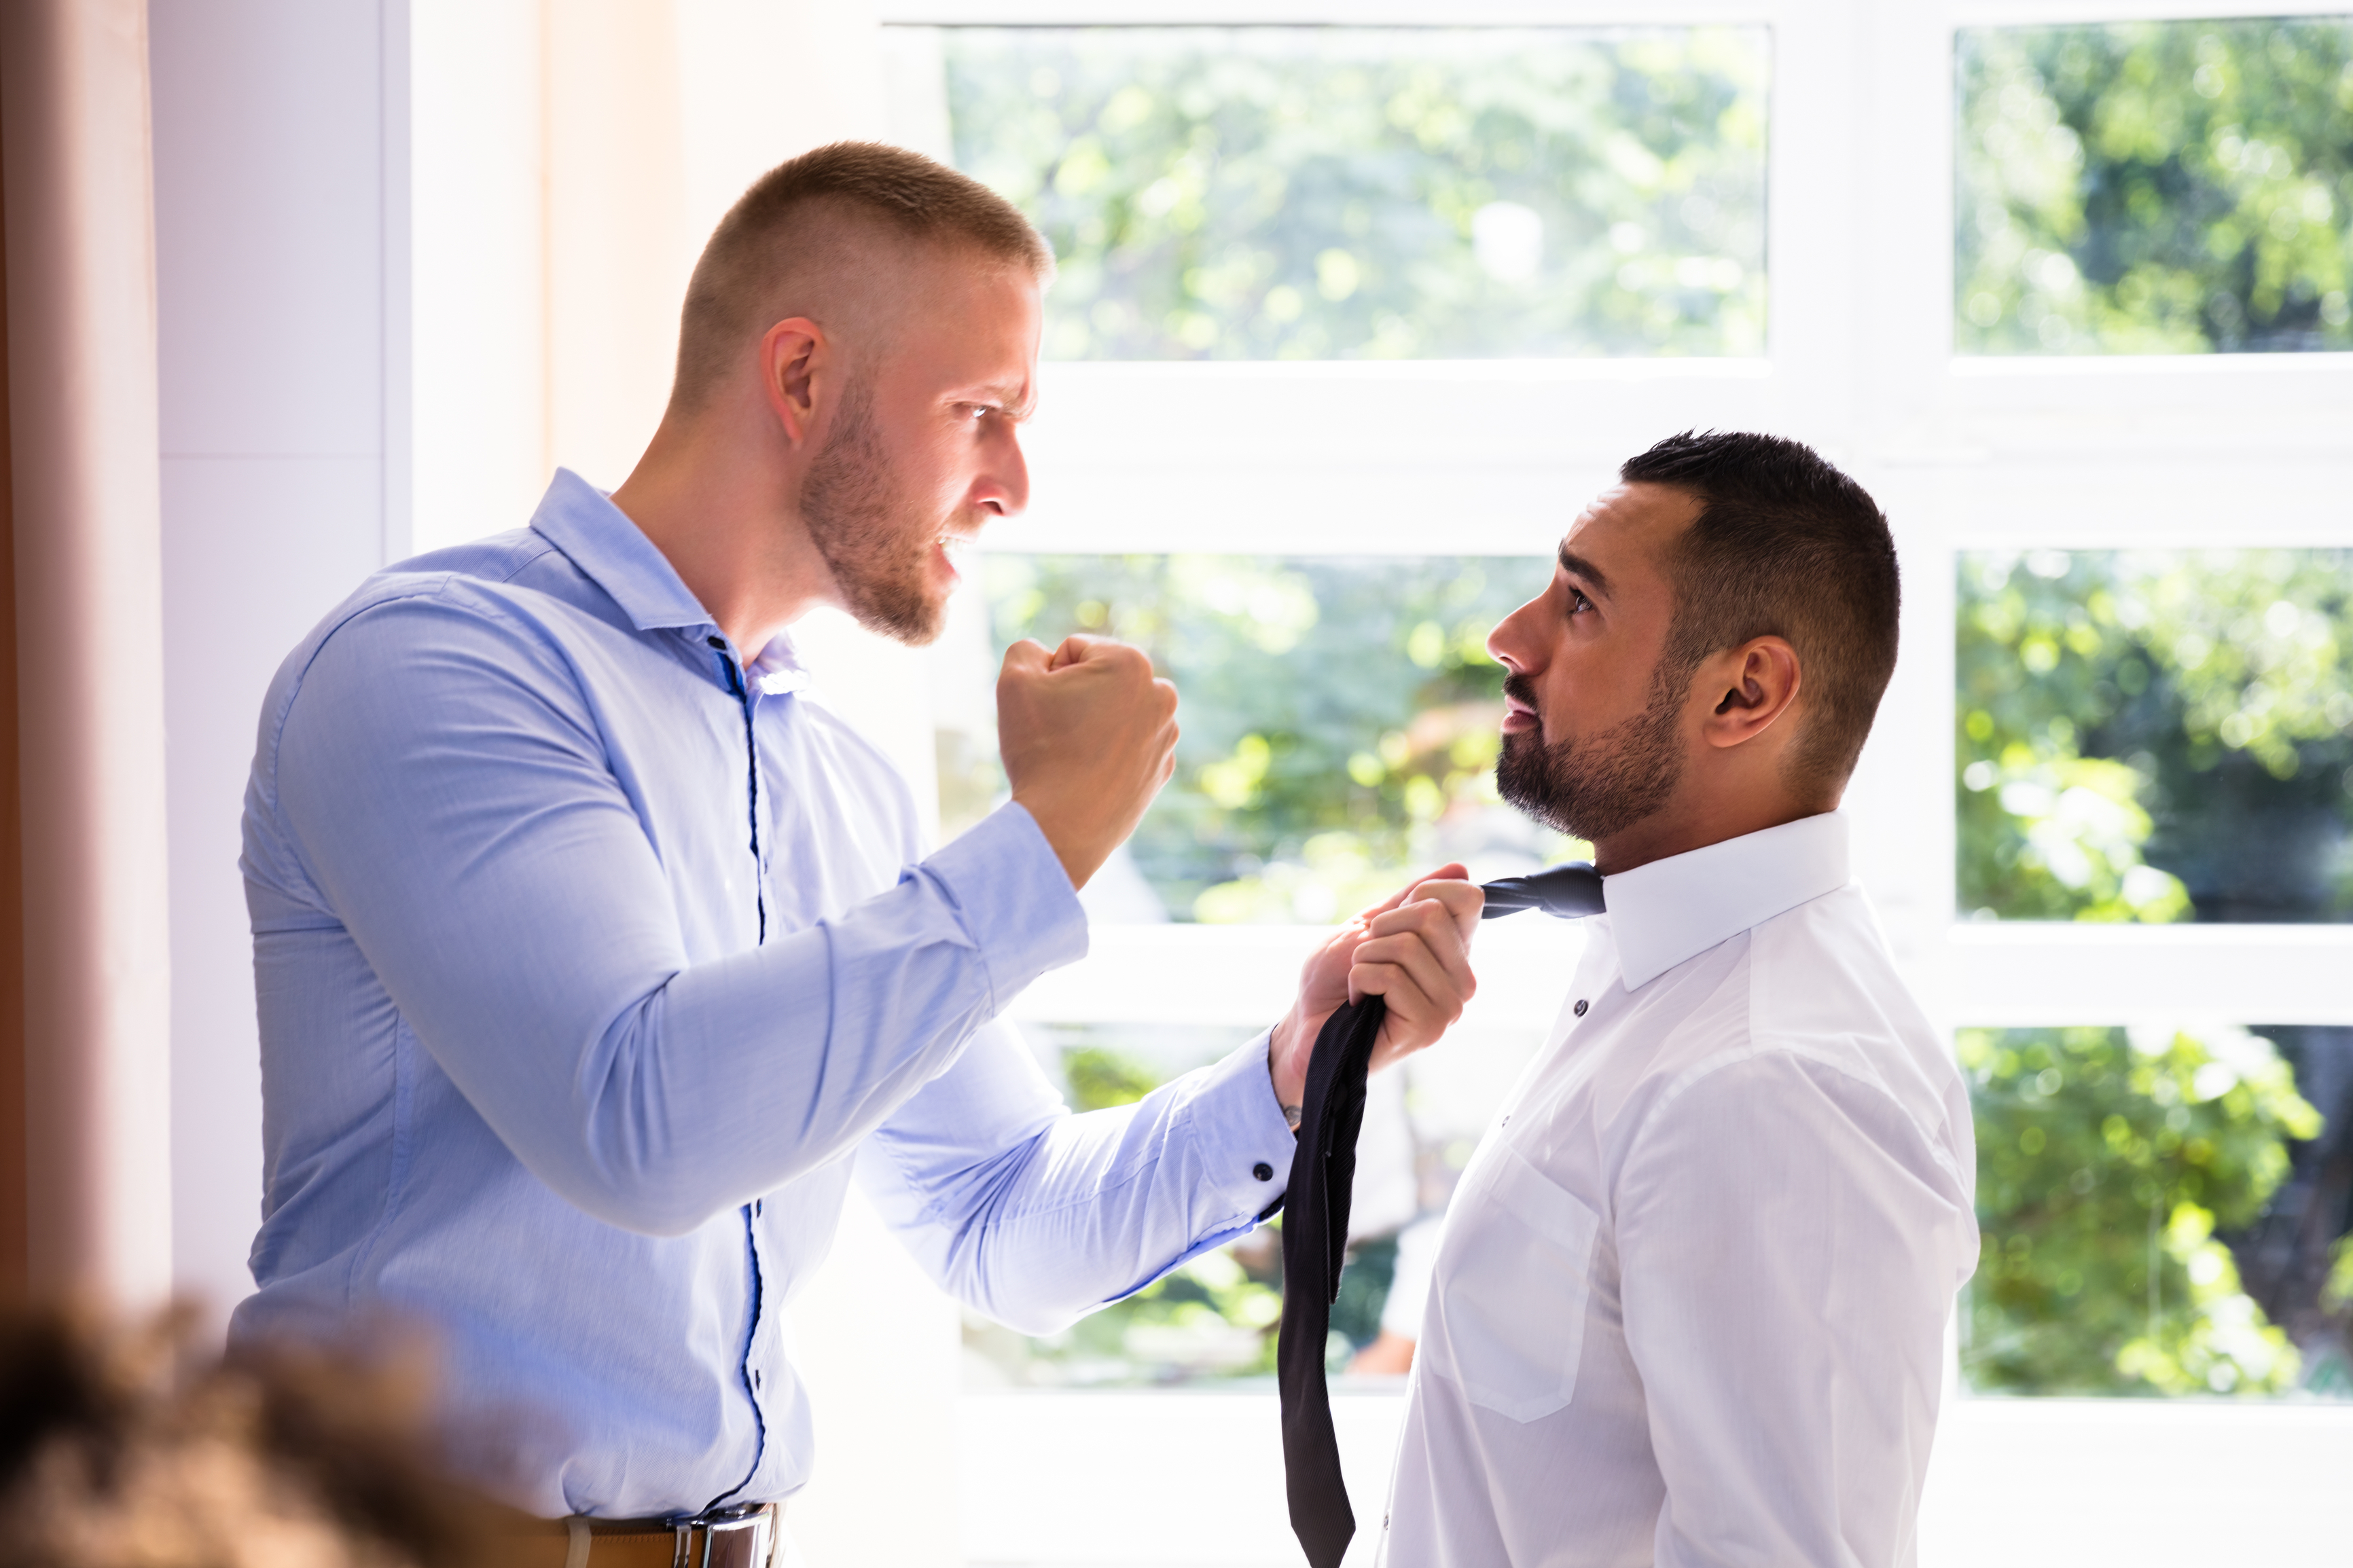 Man threatening another man, displaying workplace violence